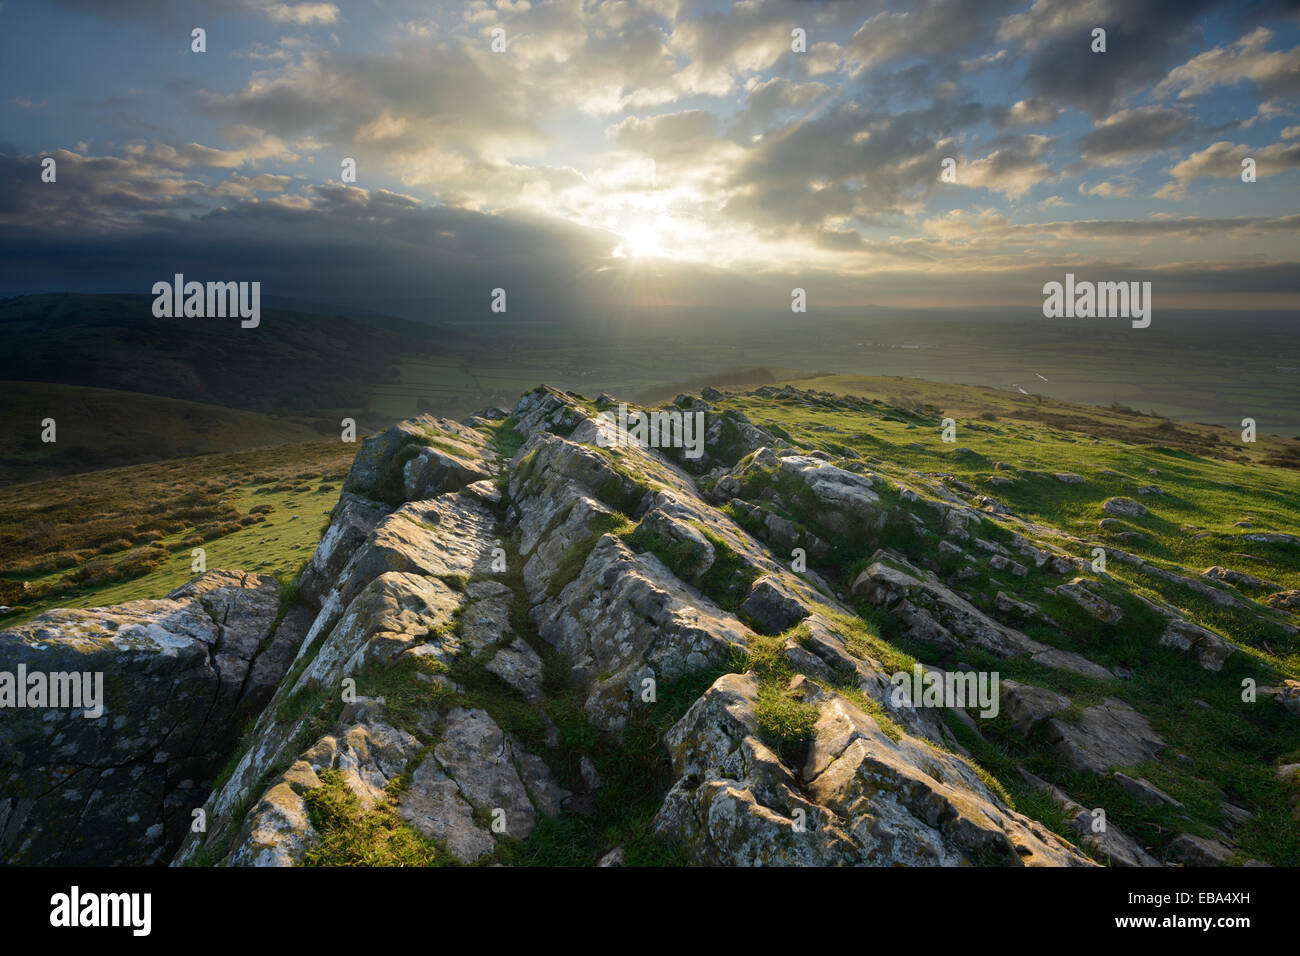 The distinctive rocky peak of Crook Peak bathed in sunshine on the Mendip Hills, Somerset. - Stock Image